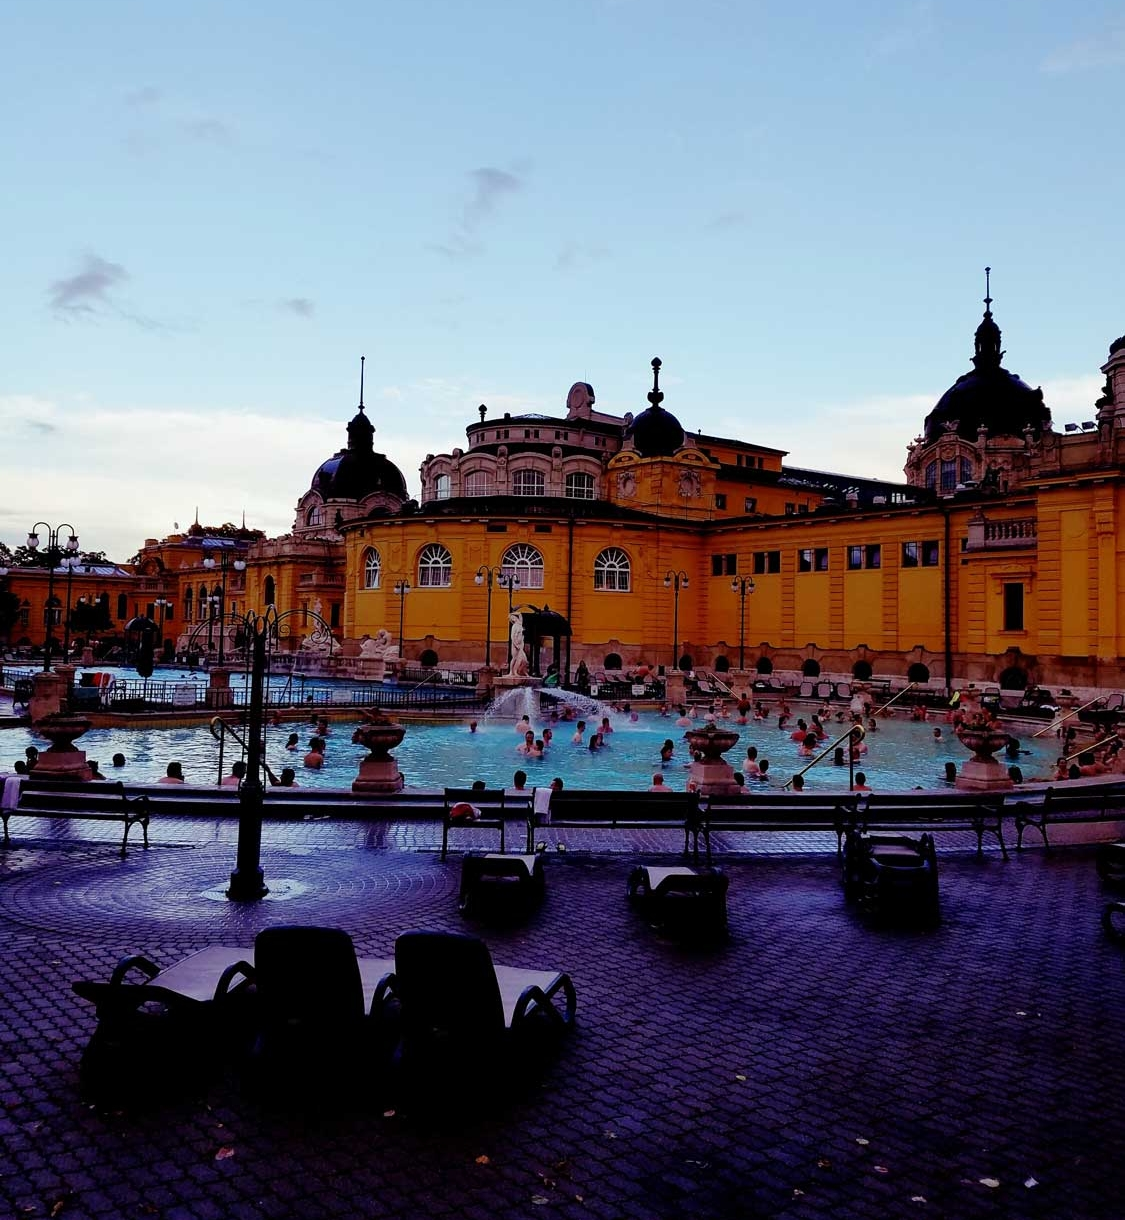 The Hungarian bath houses in Budapest have many different pools of varying temperatures inside and out. The interior rooms have striking Roman architecture.